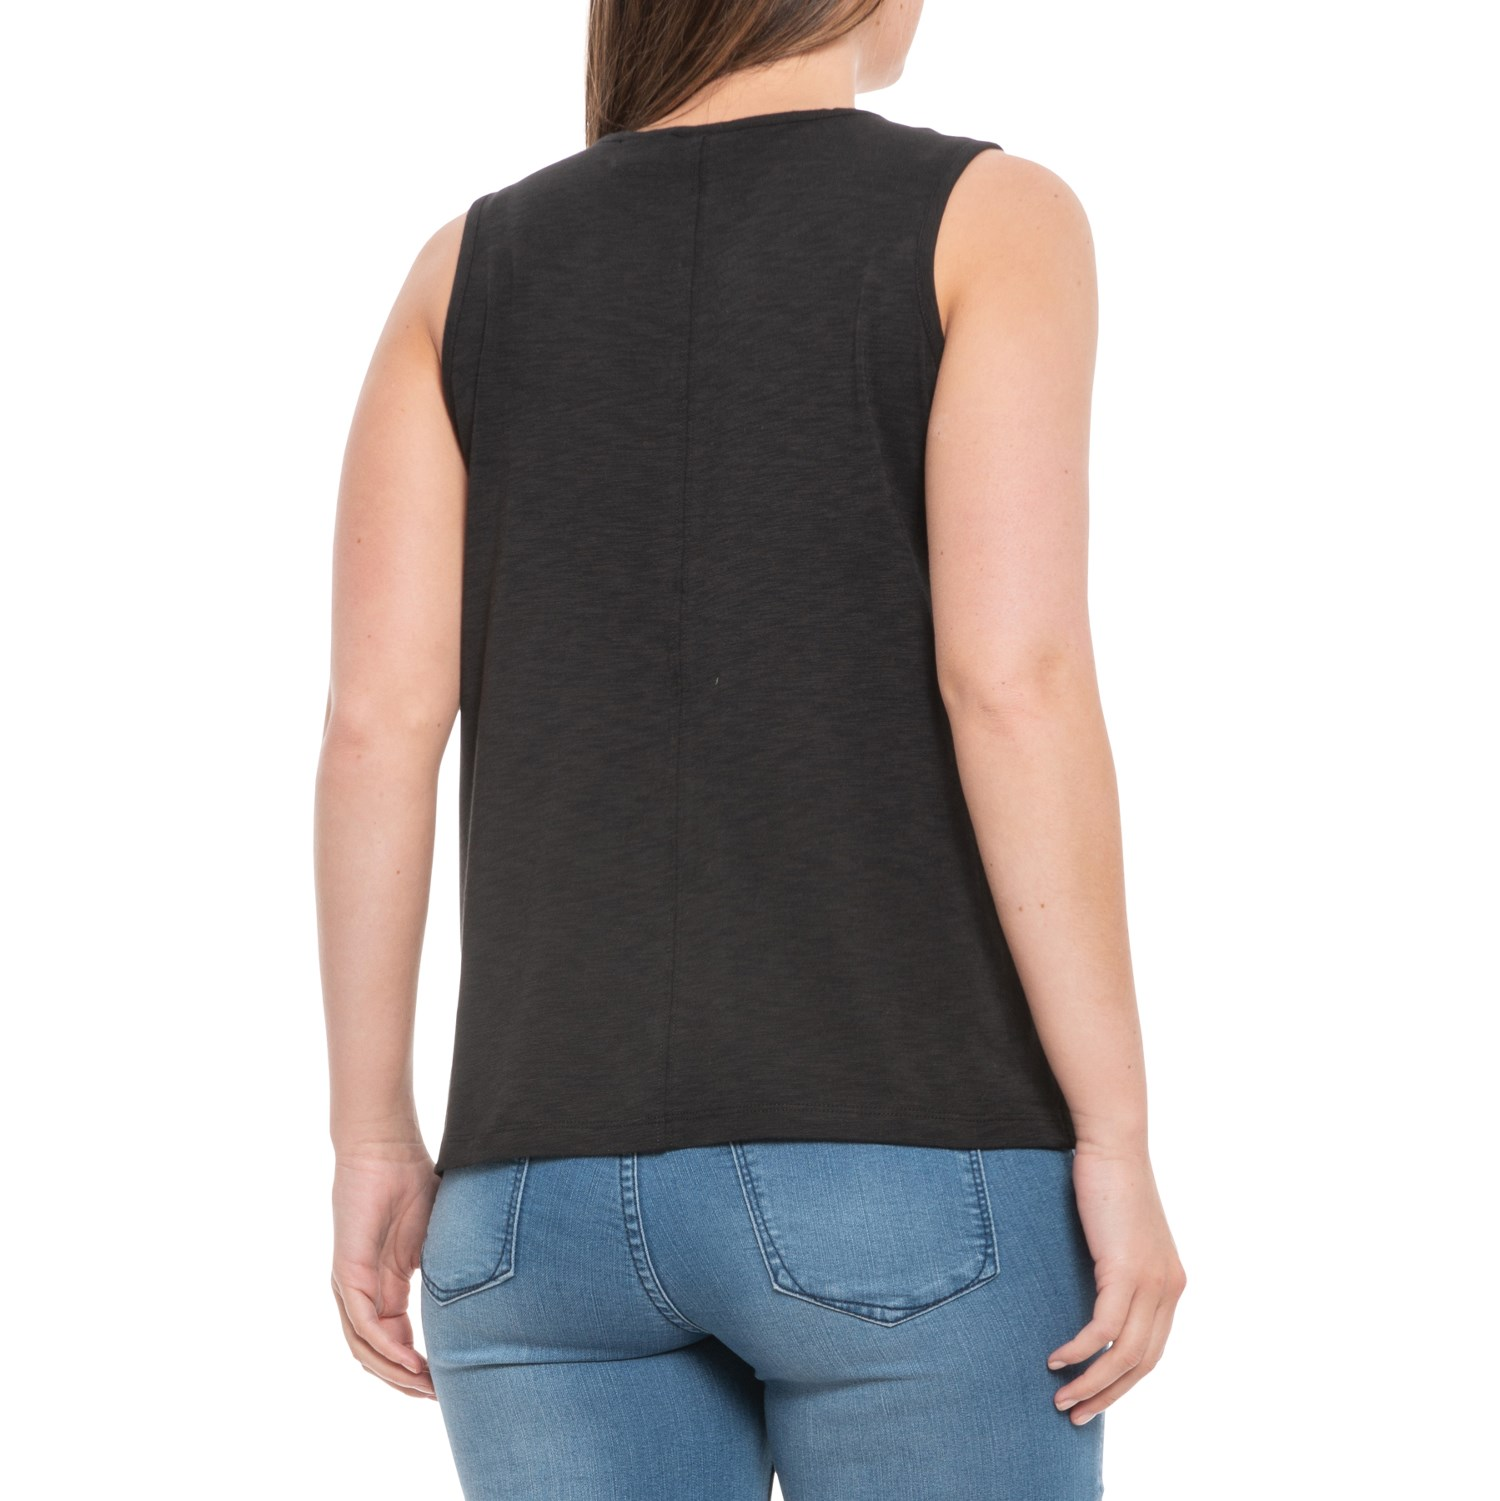 698b38484b7 Sigrid Olsen Black Scoop Neck Slub Tank Top (For Women) - Save 28%